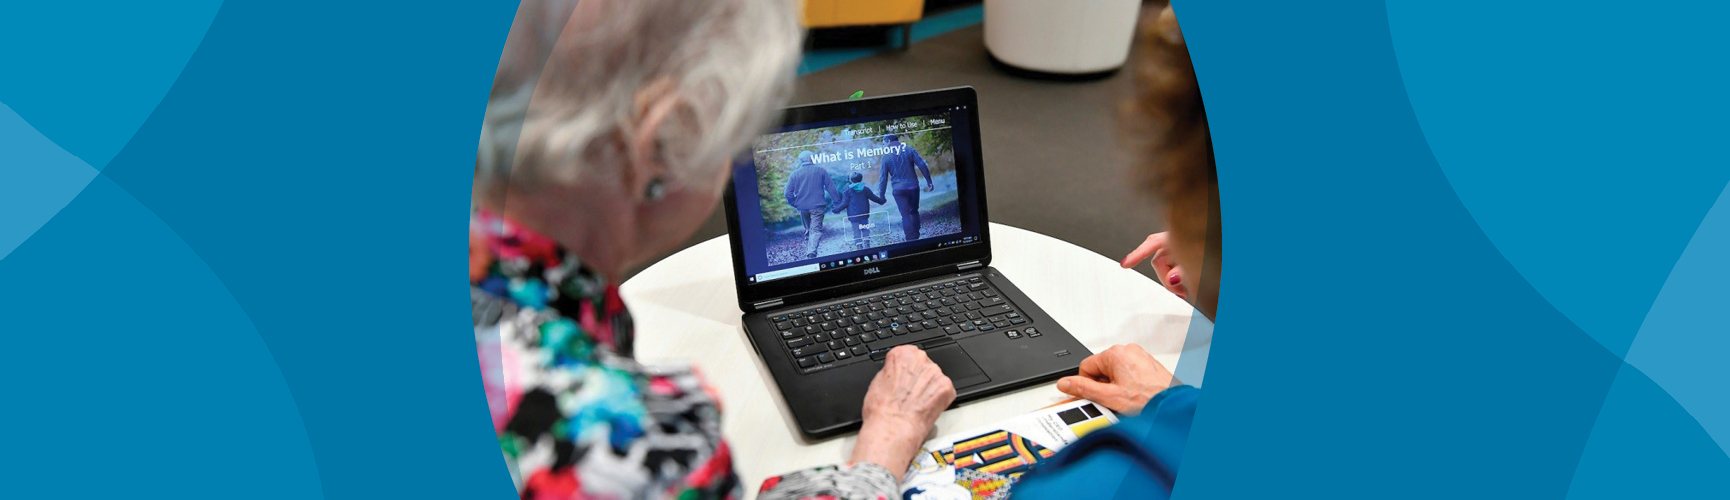 Older adults look at health information on a laptop